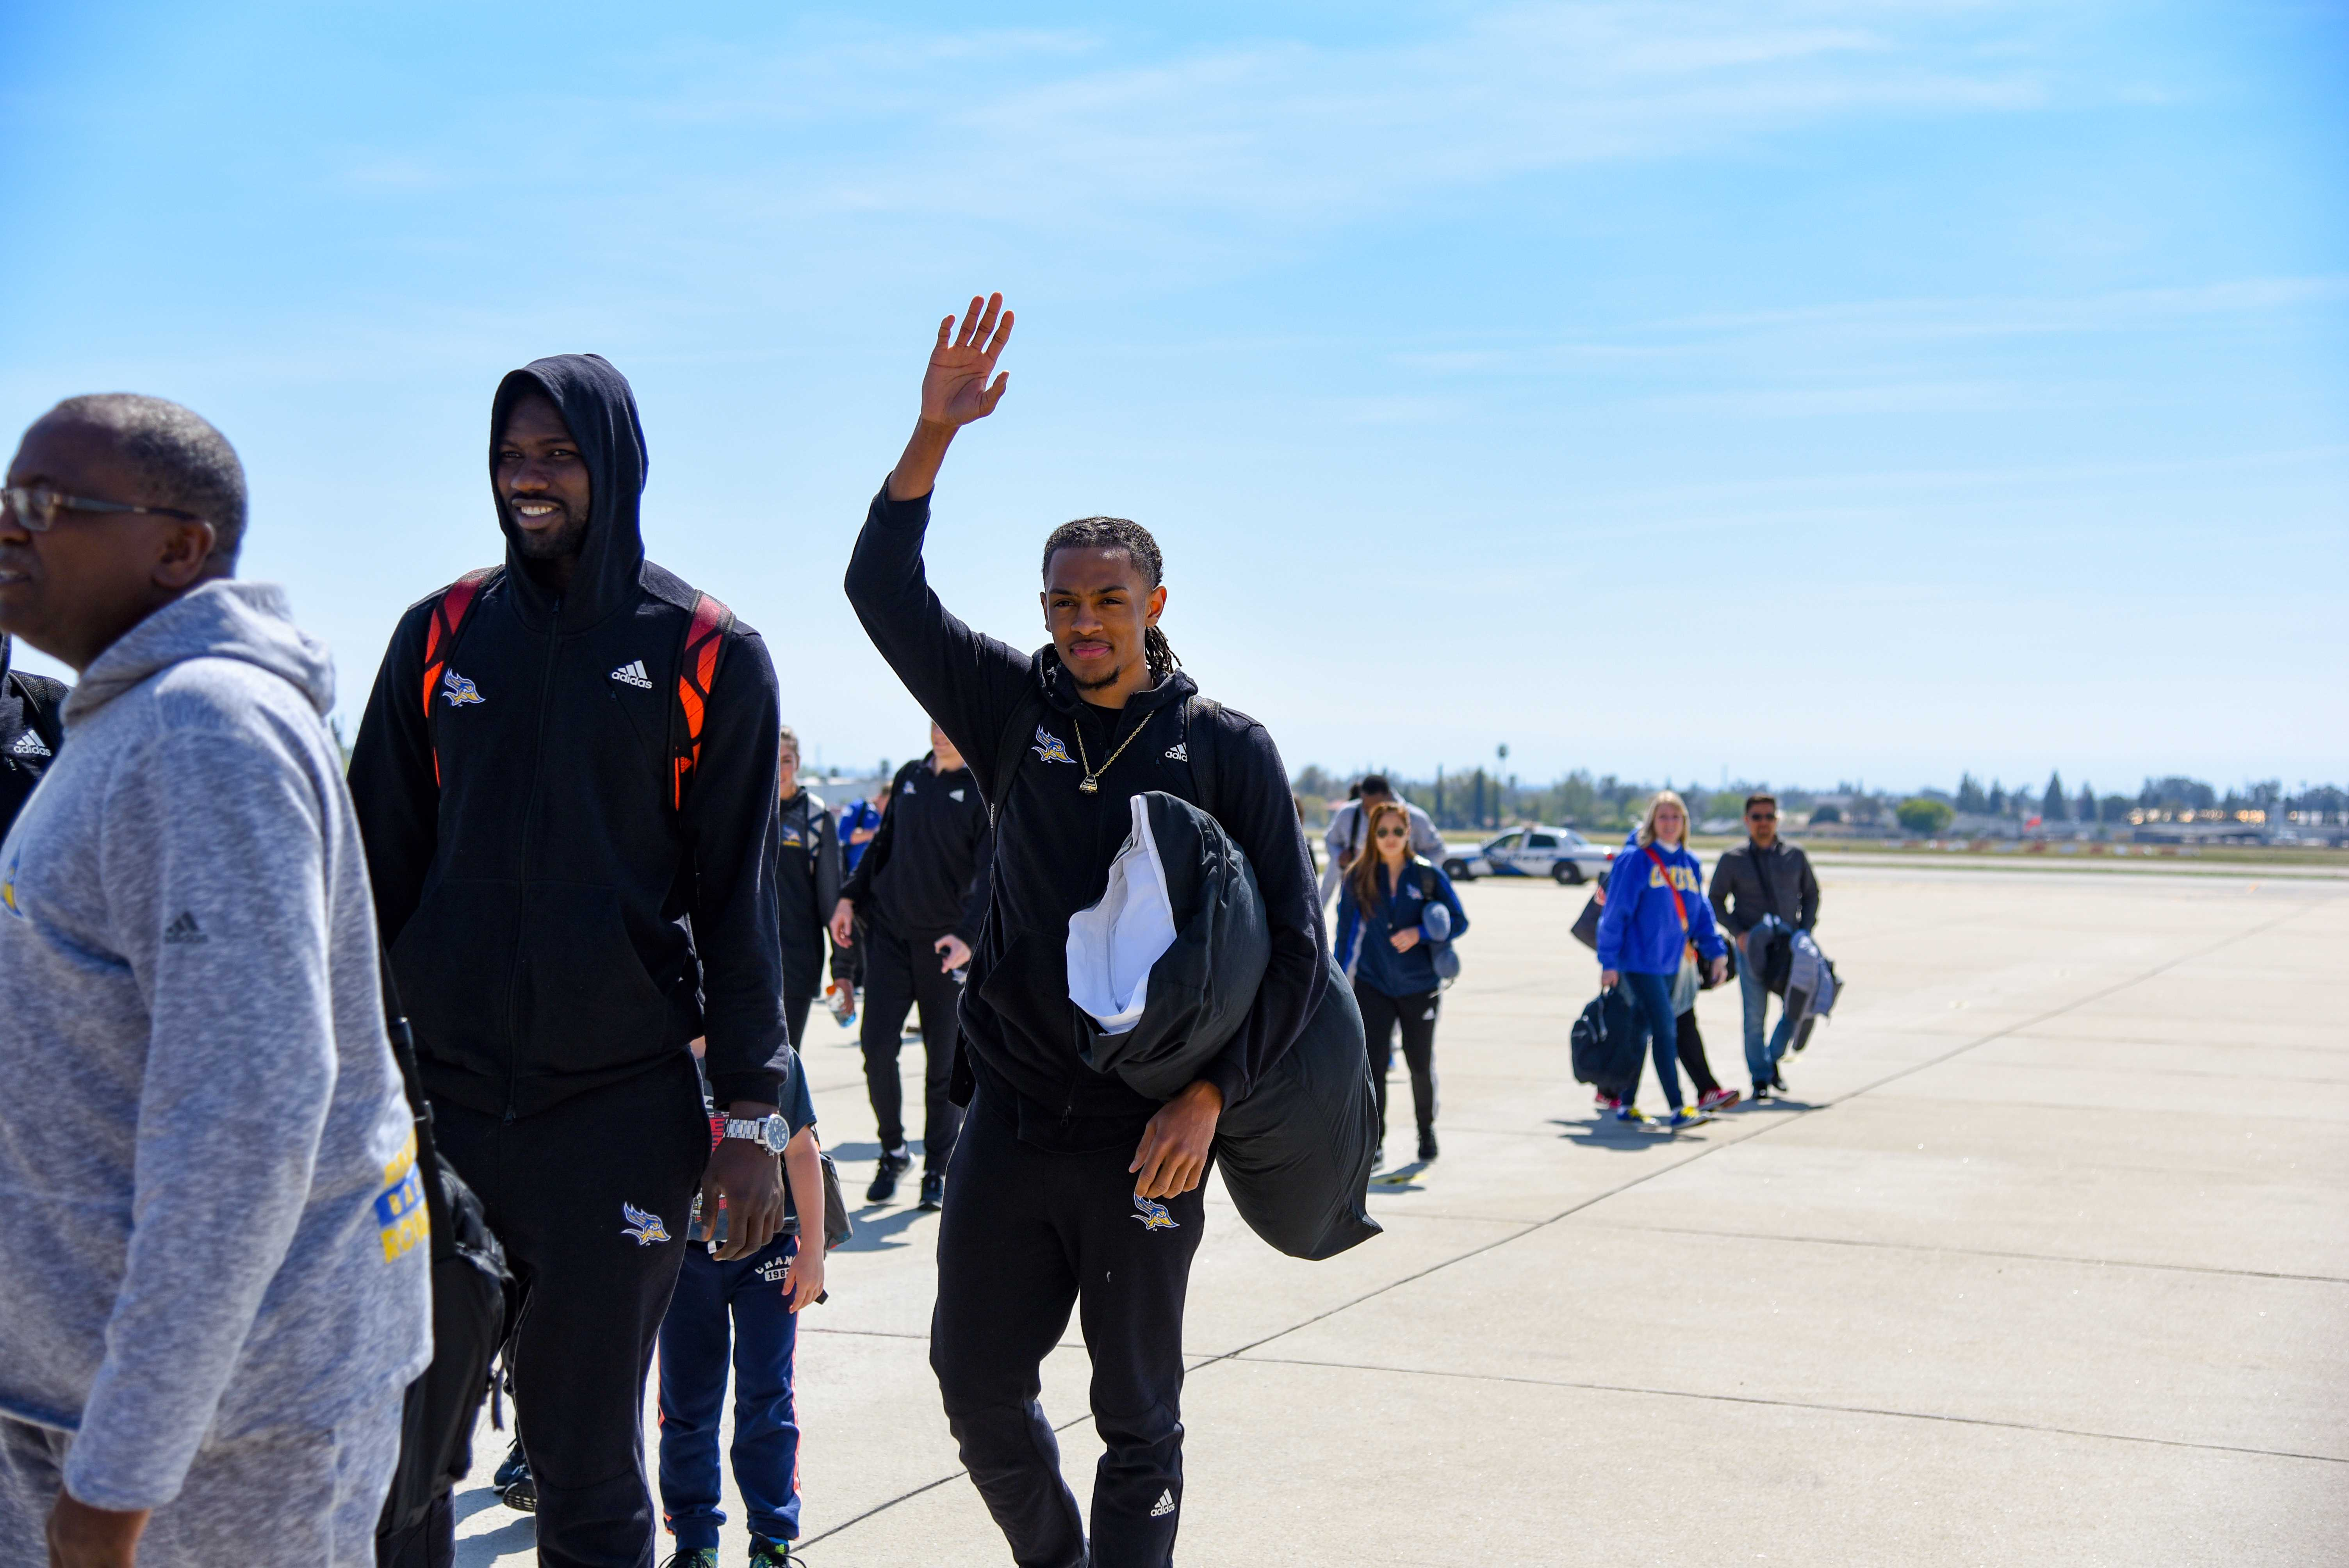 Men's basketball team returns from New York